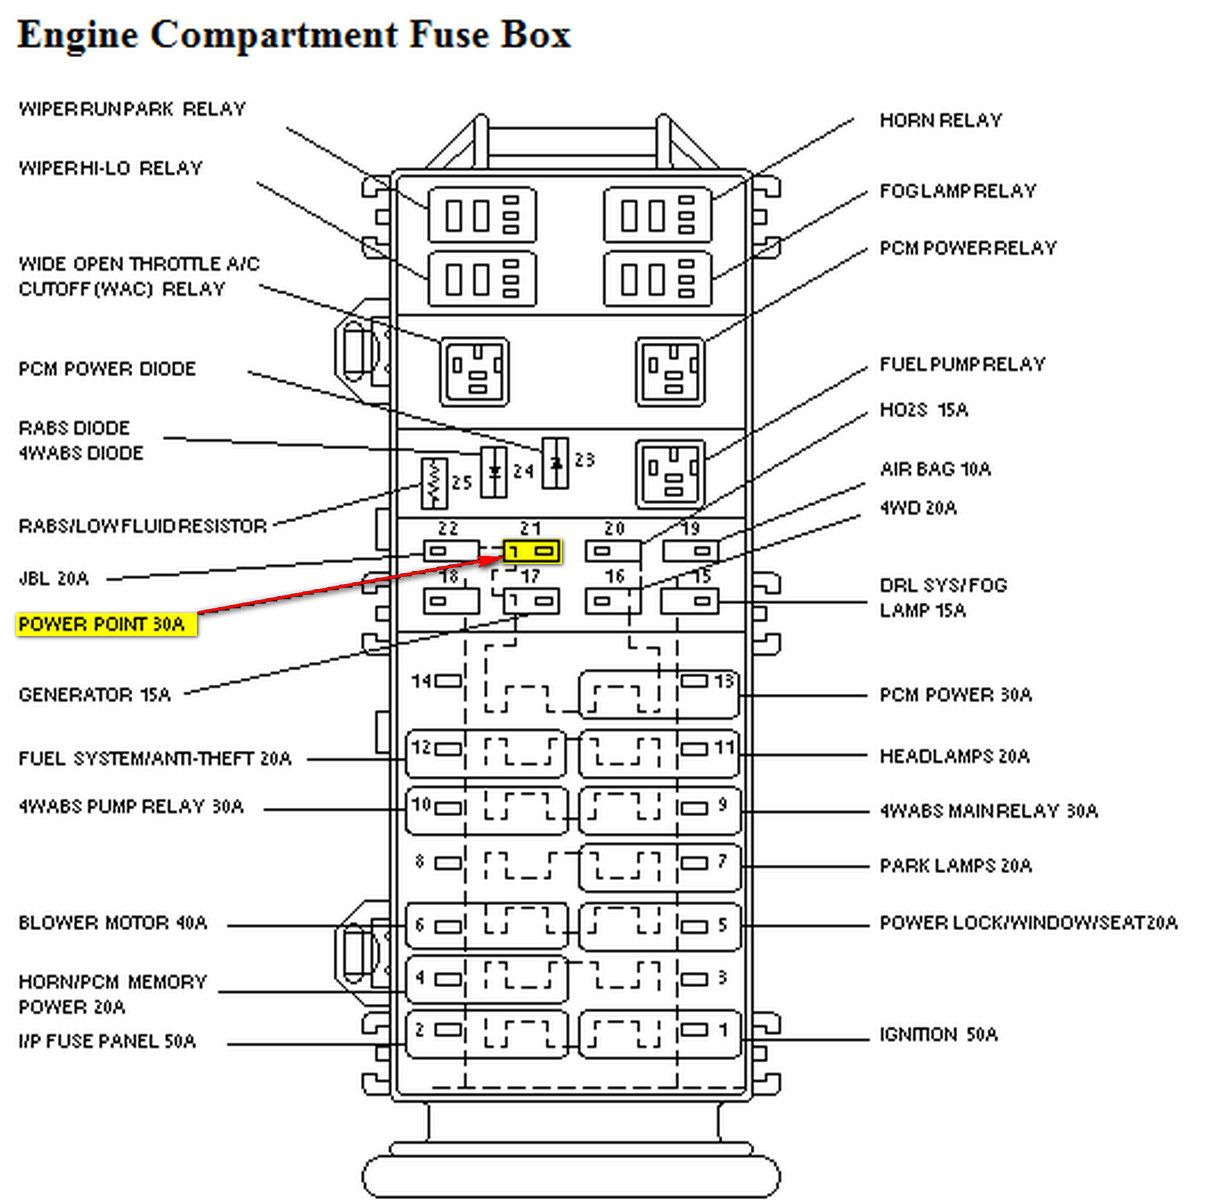 Chevy Impala Fuse Box Diagram Moreover Suzuki Reno Wiring Diagrams